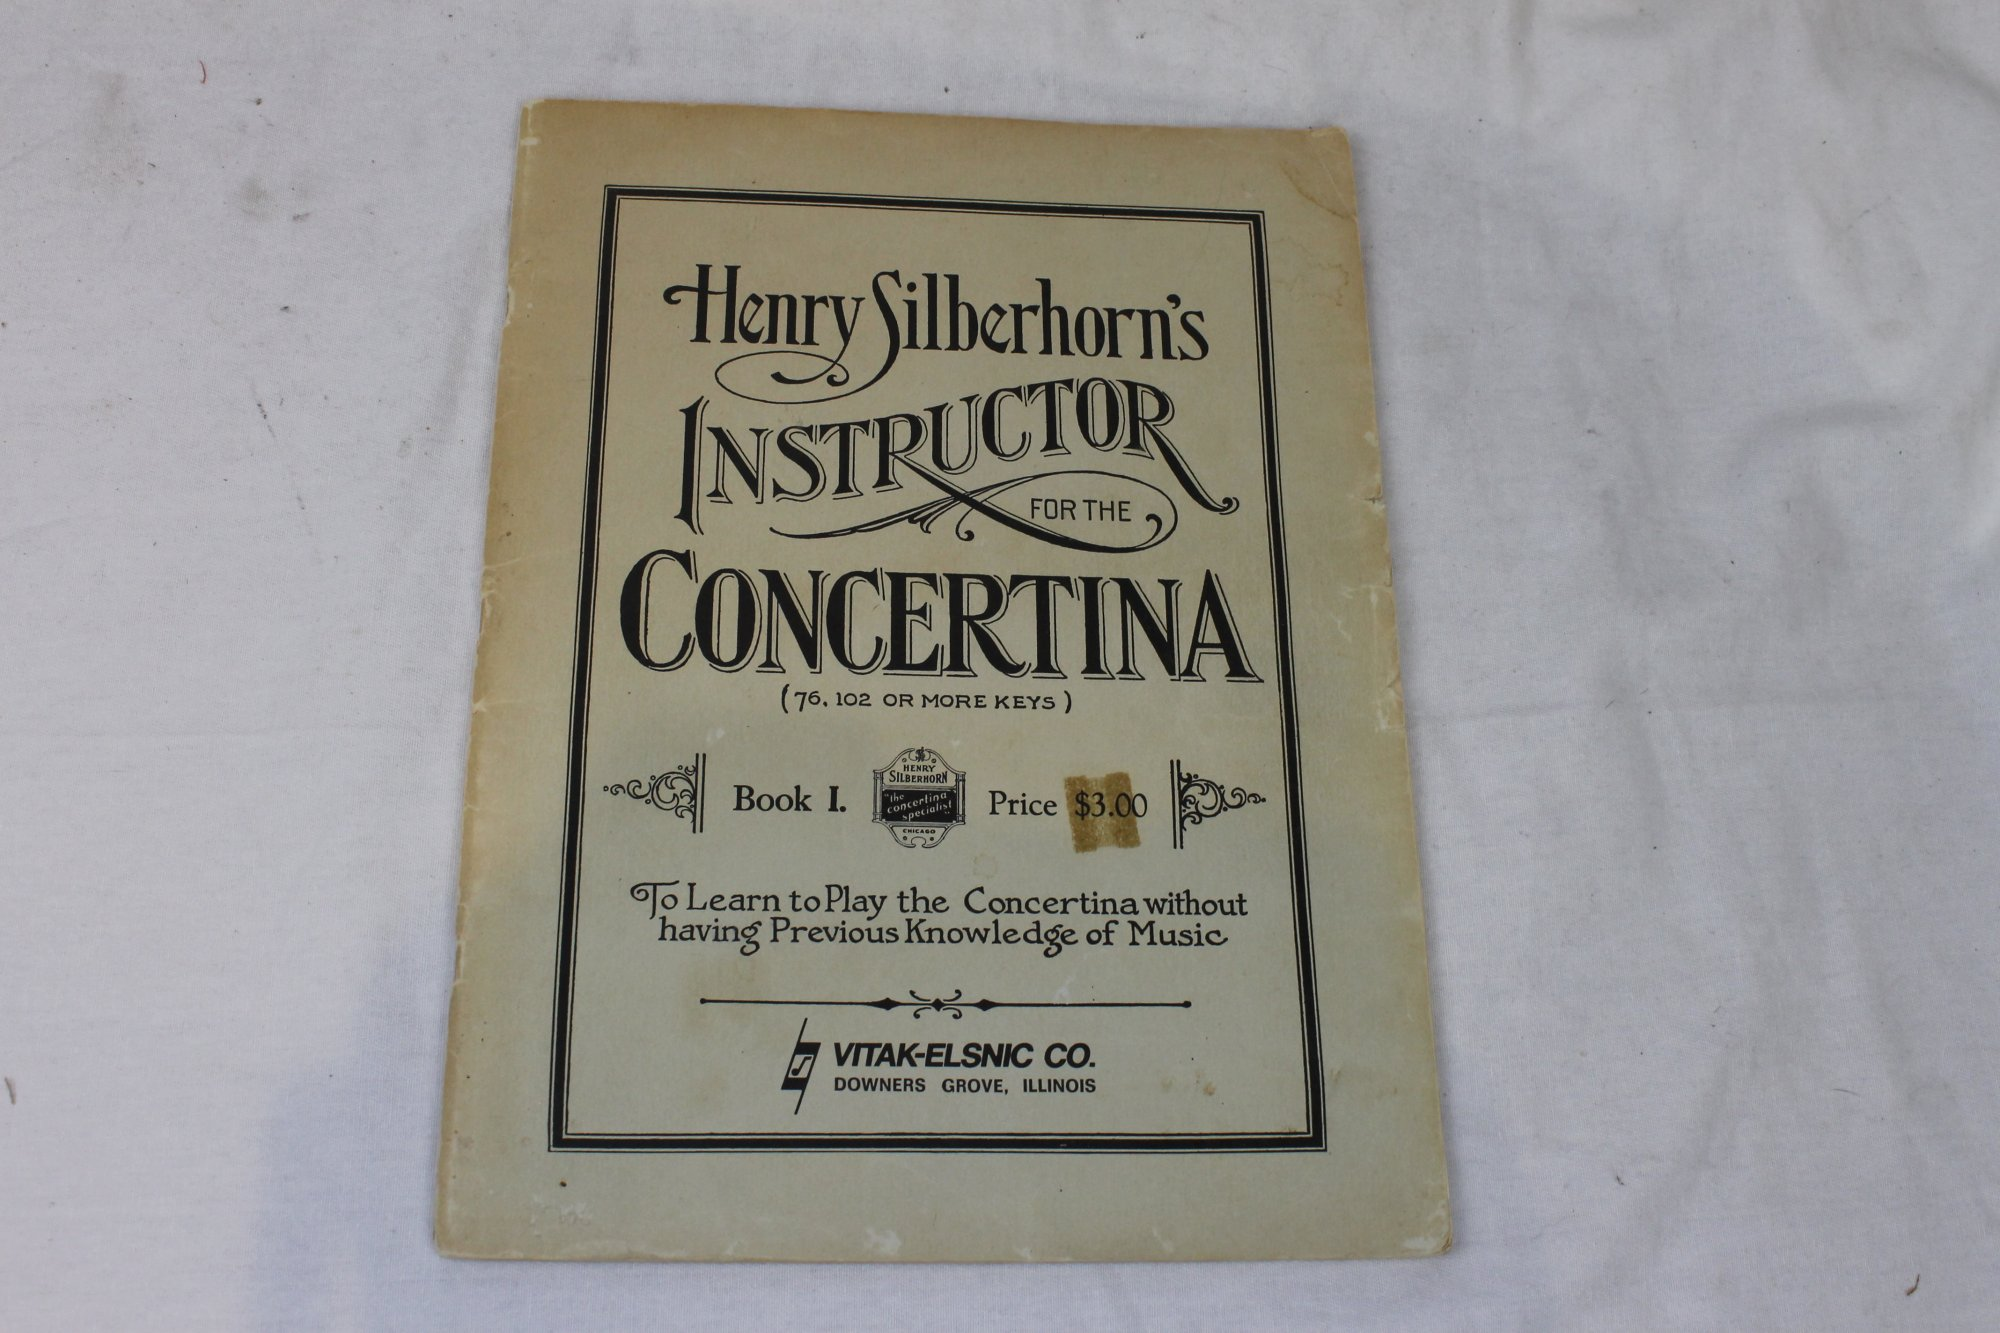 Henry Silberhorn's Instructor for the Concertina, Book I: To Learn to Play the Concertina without having Previous Knowledge of Music